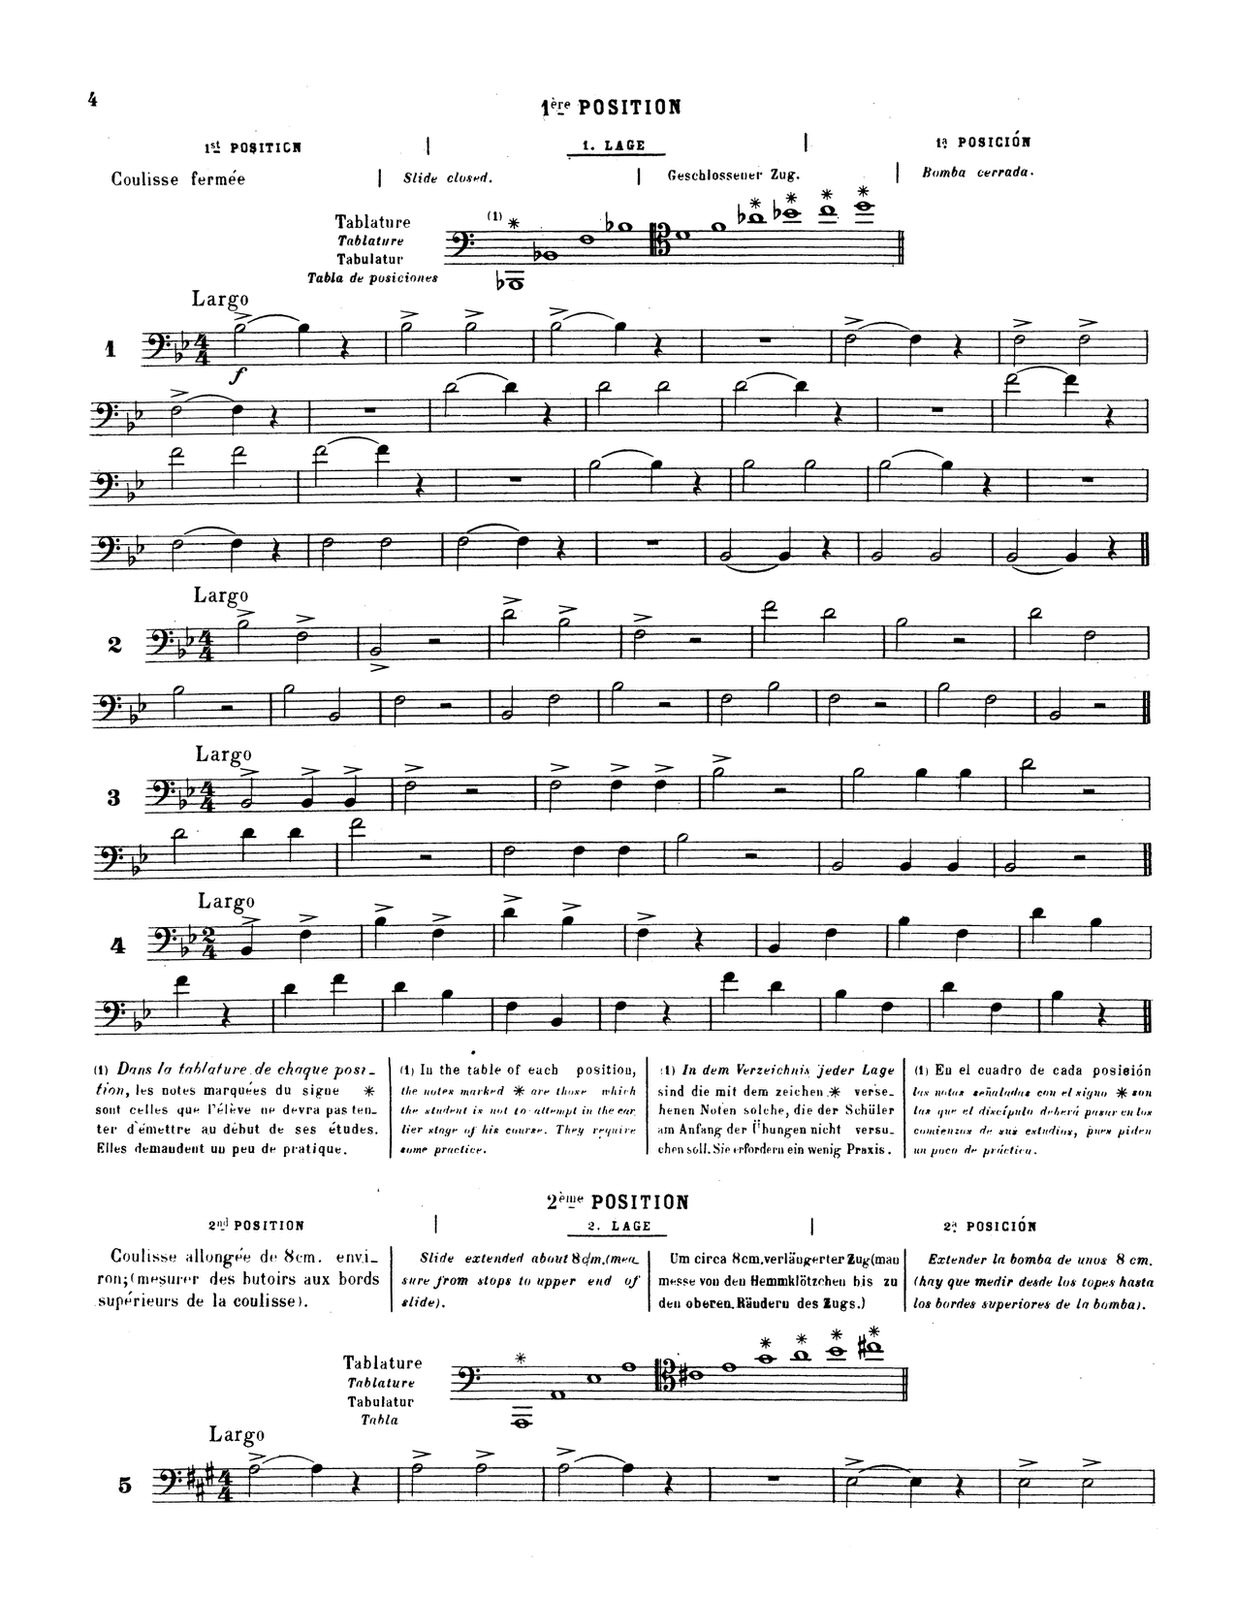 Lafosse, Andre, Complete Method of Slide Trombone 4